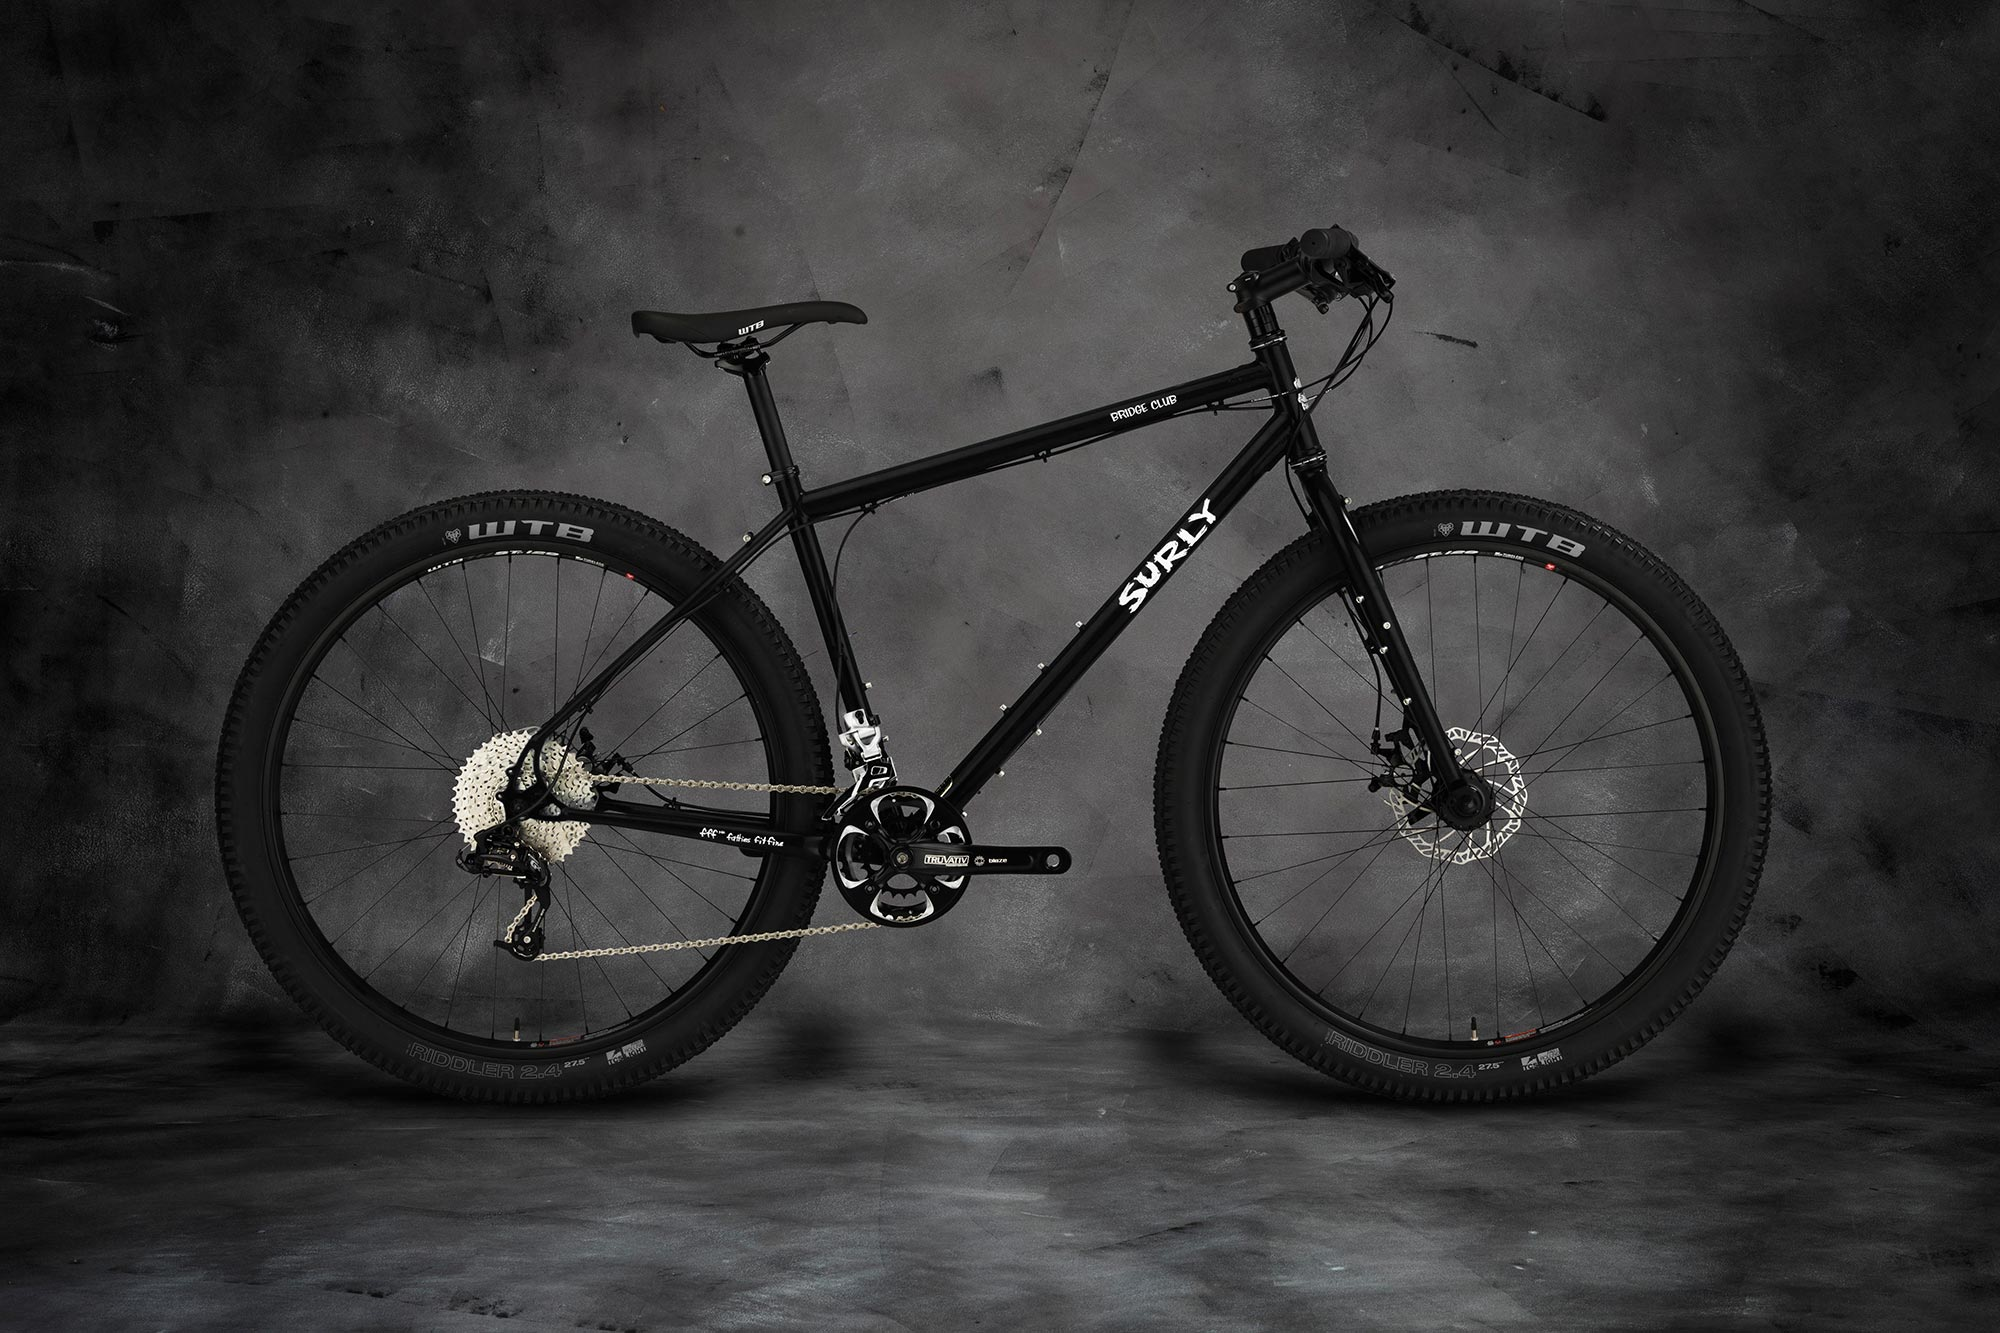 Bridge Club bike - Dark Black 2x